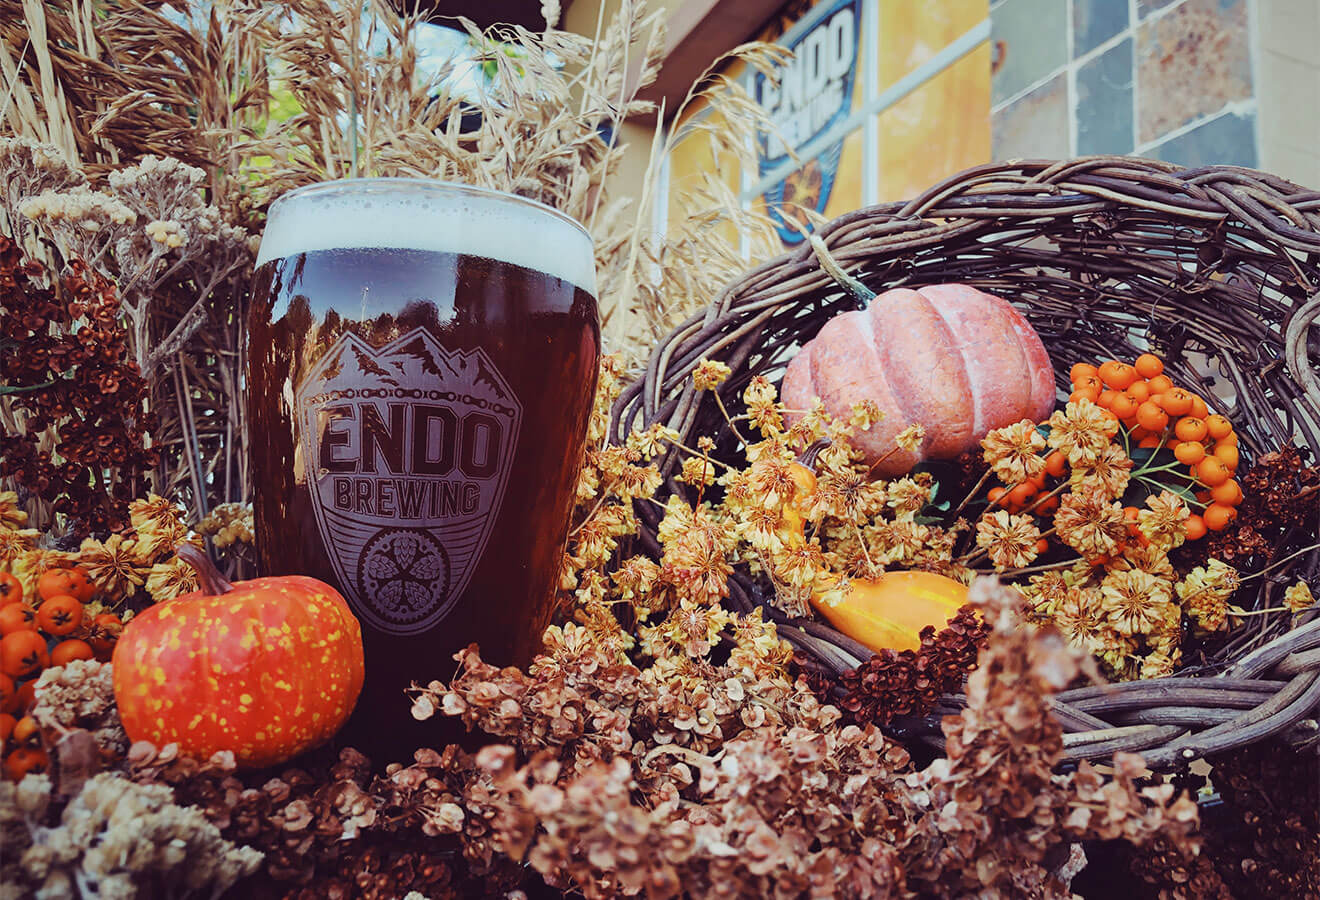 Endo Brewing No Pumpkin, Punkin Autumn Spice Ale